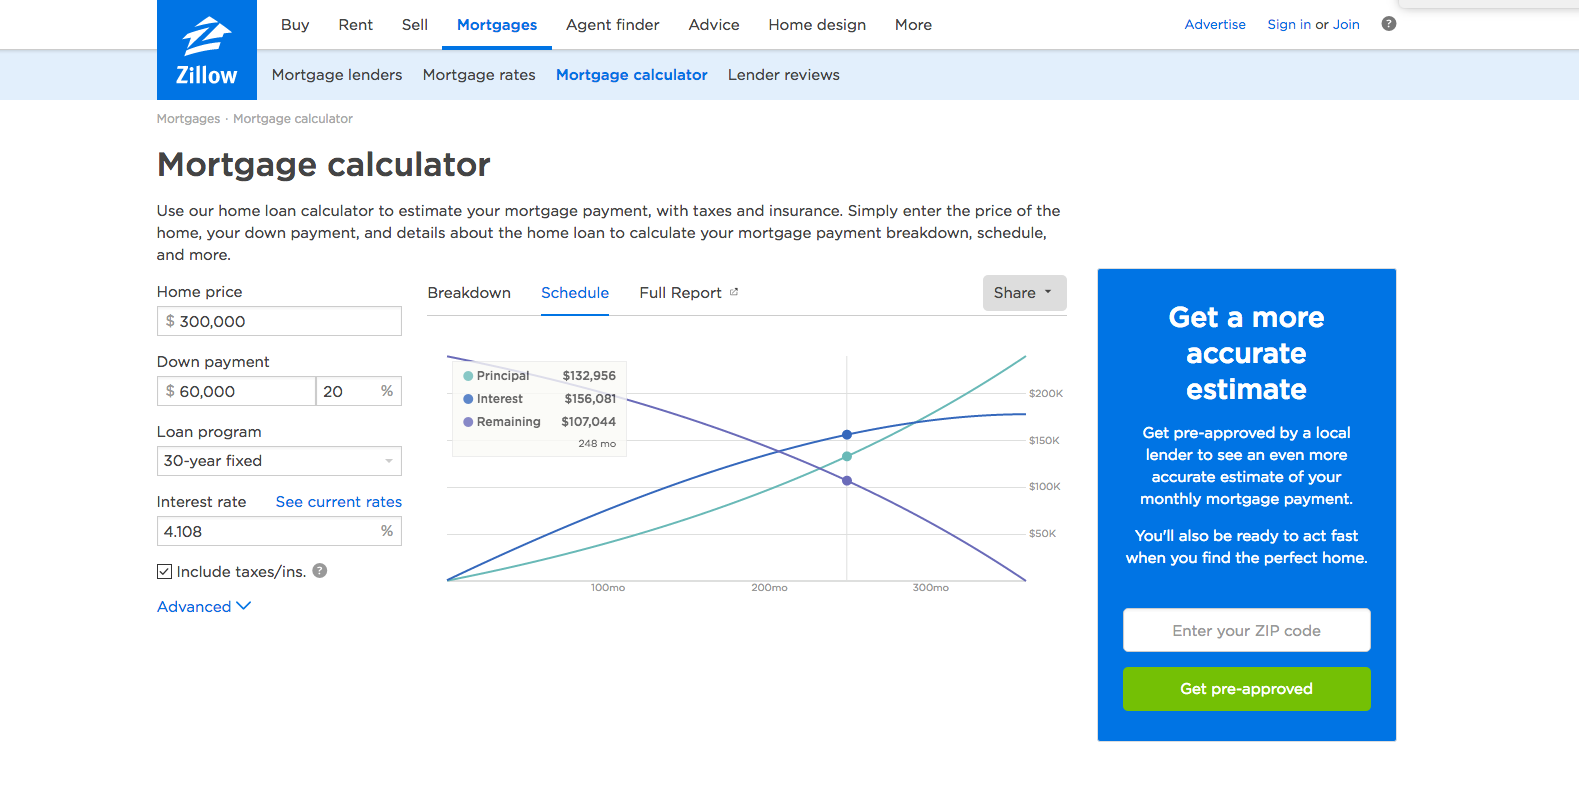 Zillow Mortgage Calculator Https Www Zillow Com Mortgage